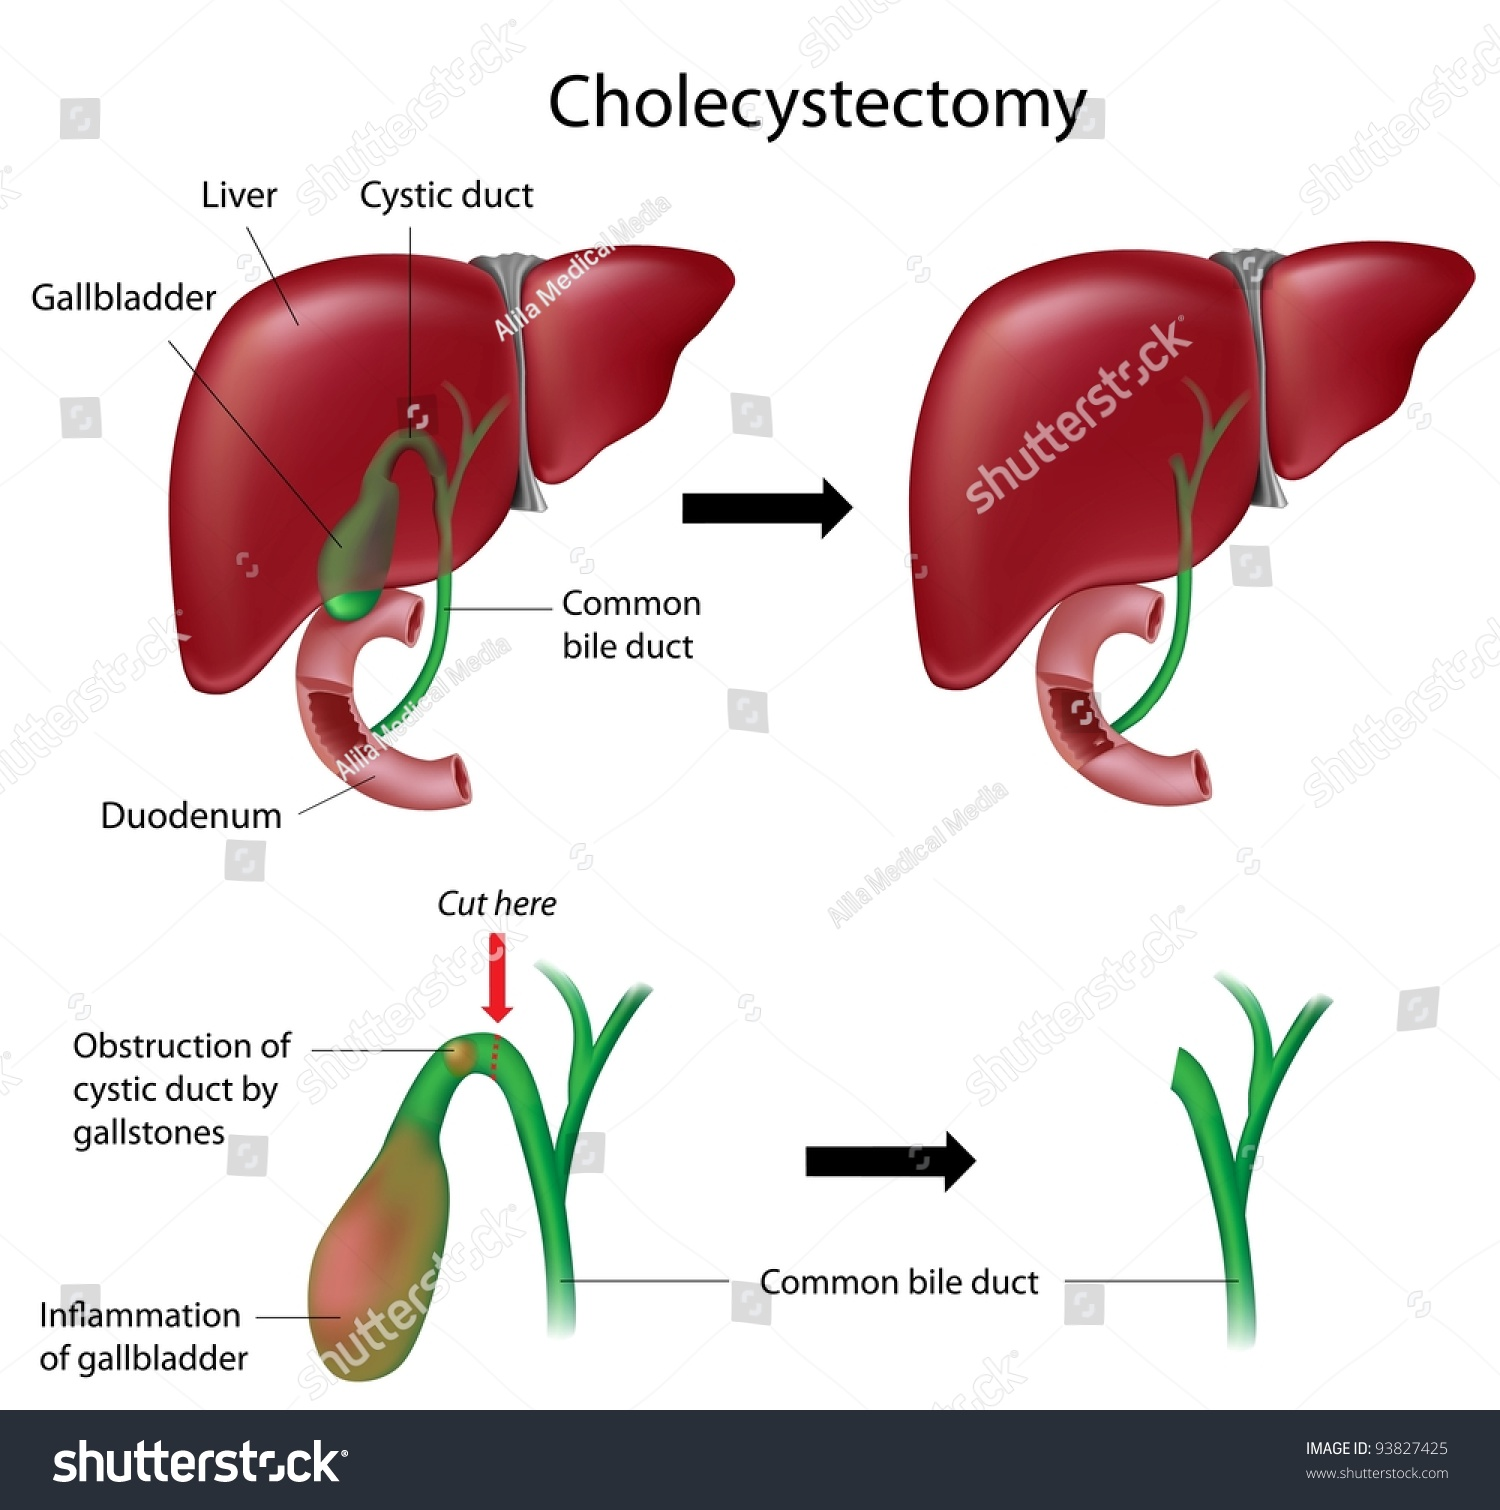 Cholecystectomy Gallbladder Removal Surgery Stock Illustration ...